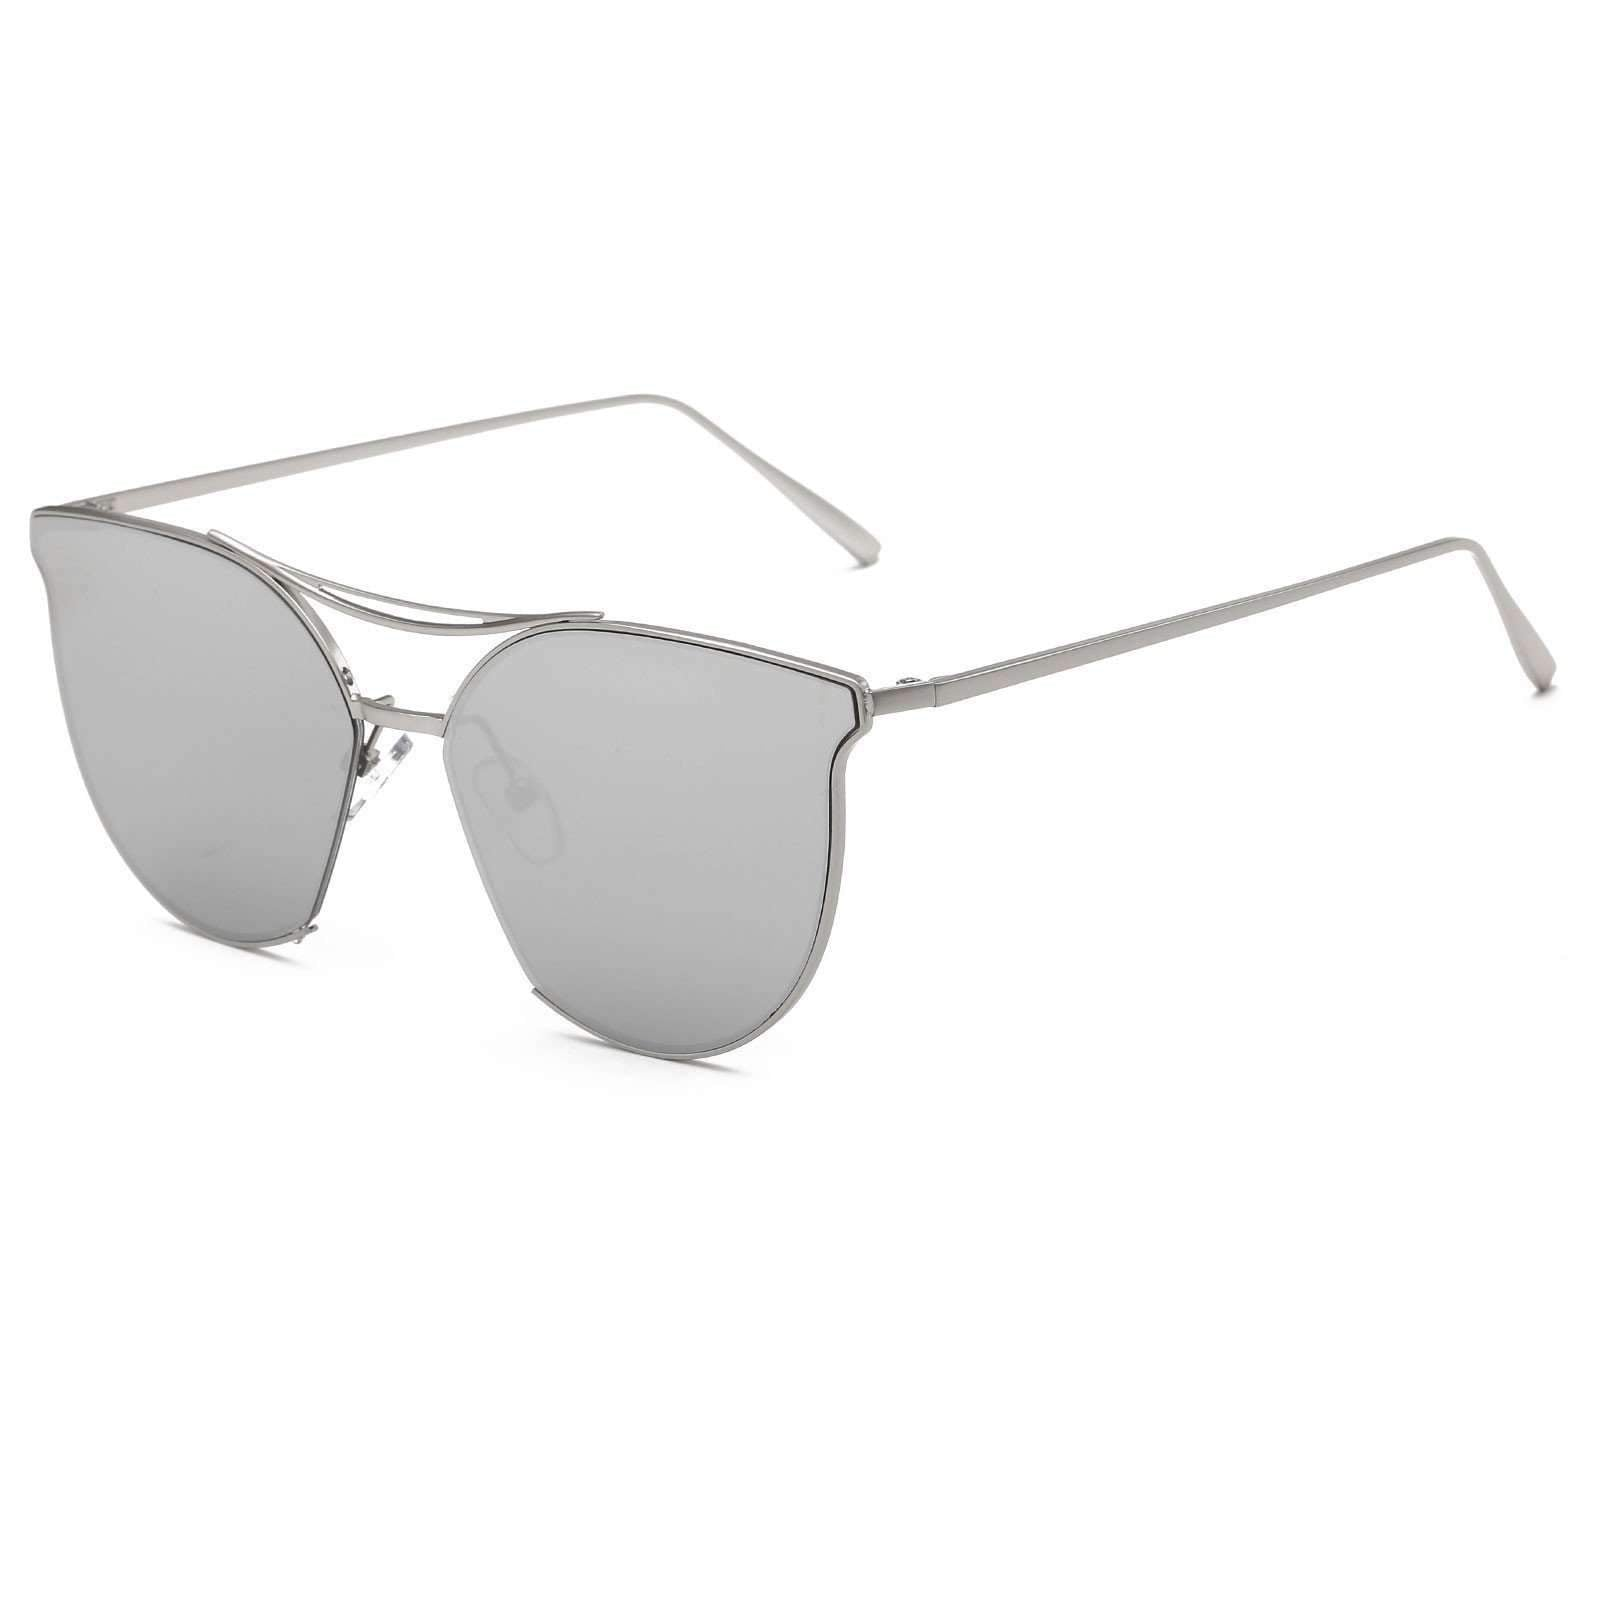 Contemporary Cat Eye Gradient Lens Sunglasses